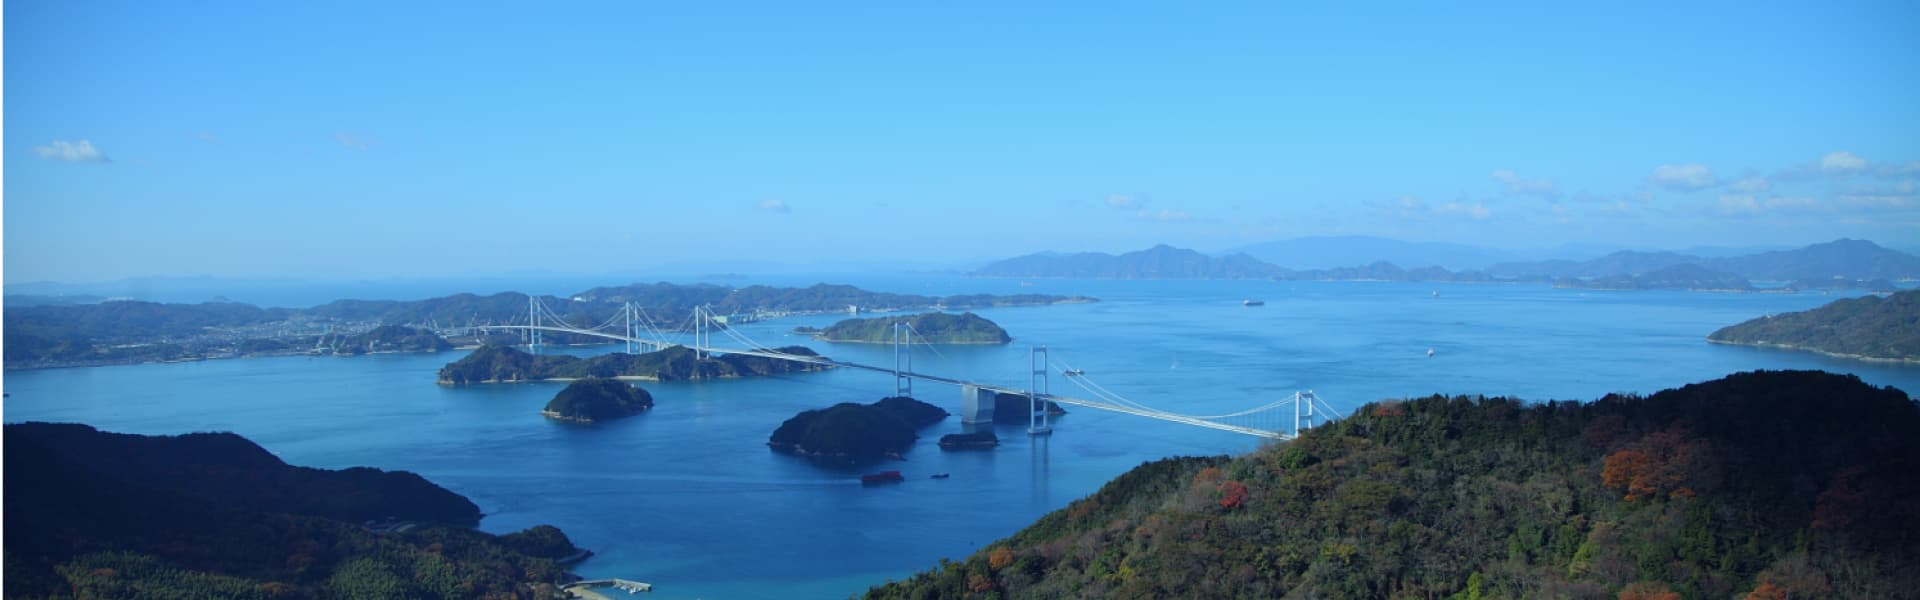 [Hiroshima-Matsuyama Setouchi / Matsuyama Tour]   Extra Edition Journey from Hiroshima to Matsuyama   —    Enjoy Hiroshima's tourist spots and the Seto Inland Sea, by land or sea.